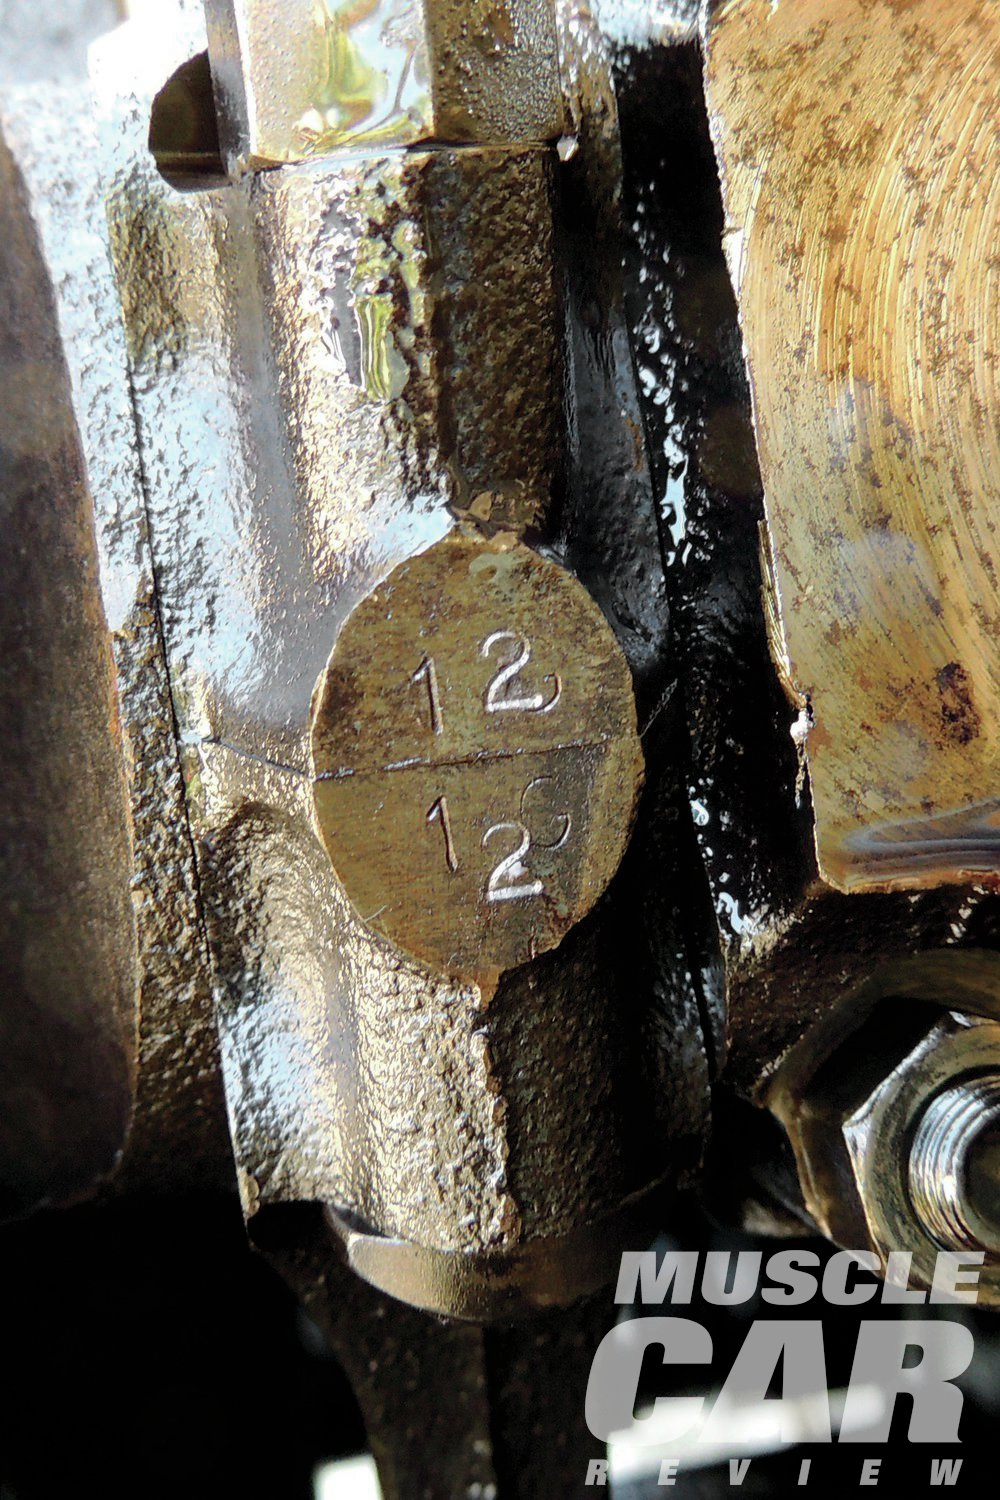 """Pontiac premarked all of the rod caps and rods. Unfortunately, Pontiac's system didn't make any sense. The No. 2 rod and cap were marked """"1G,"""" and the No. 1 rod and cap were marked """"2M."""" We did the traditional stamping from one through eight on the appropriate rods and caps."""